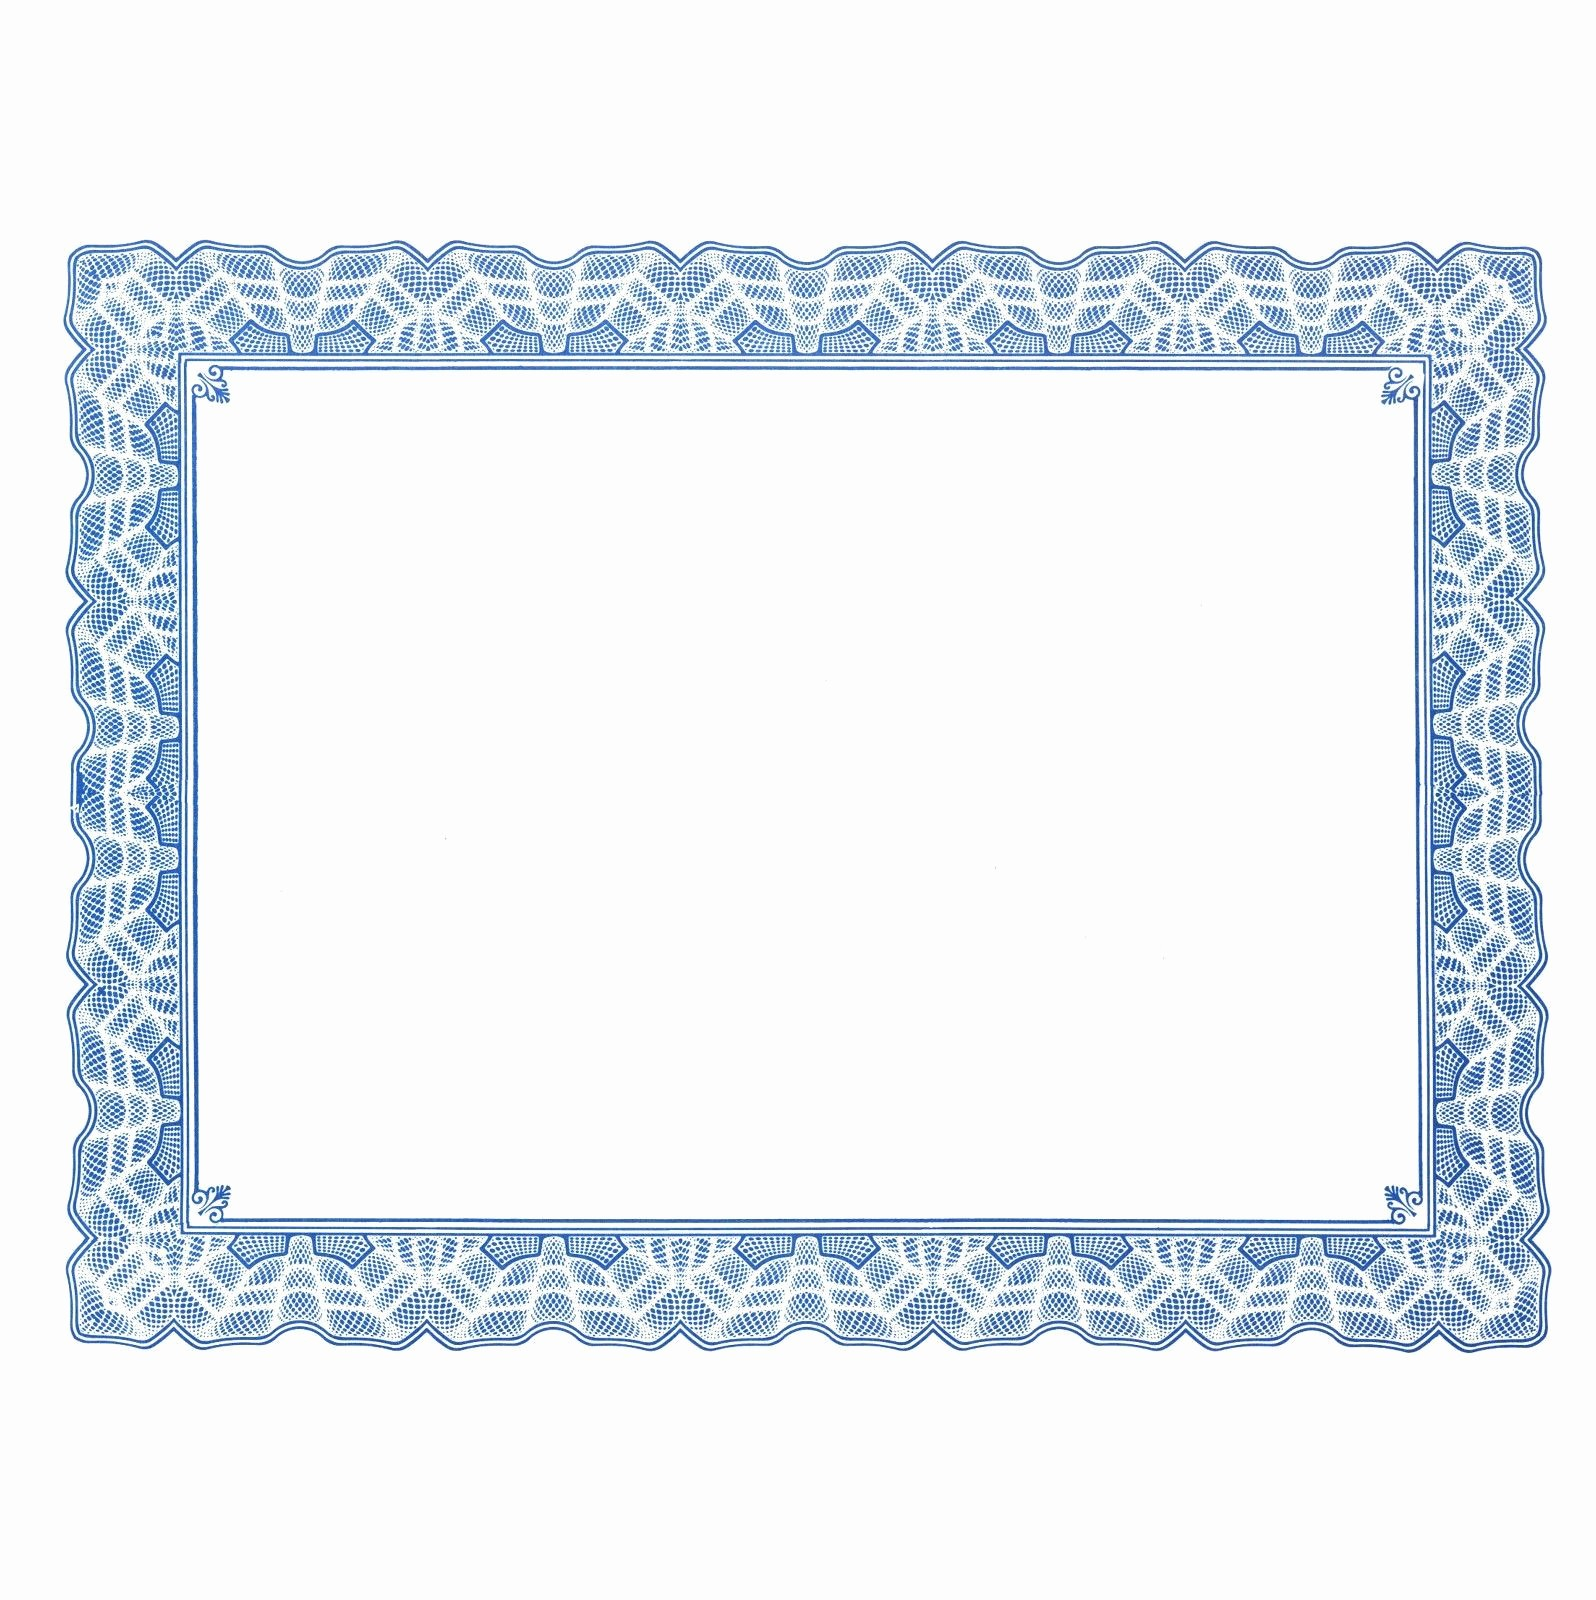 Certificate Border Design Free Download Elegant Free Certificate Border Templates for Word